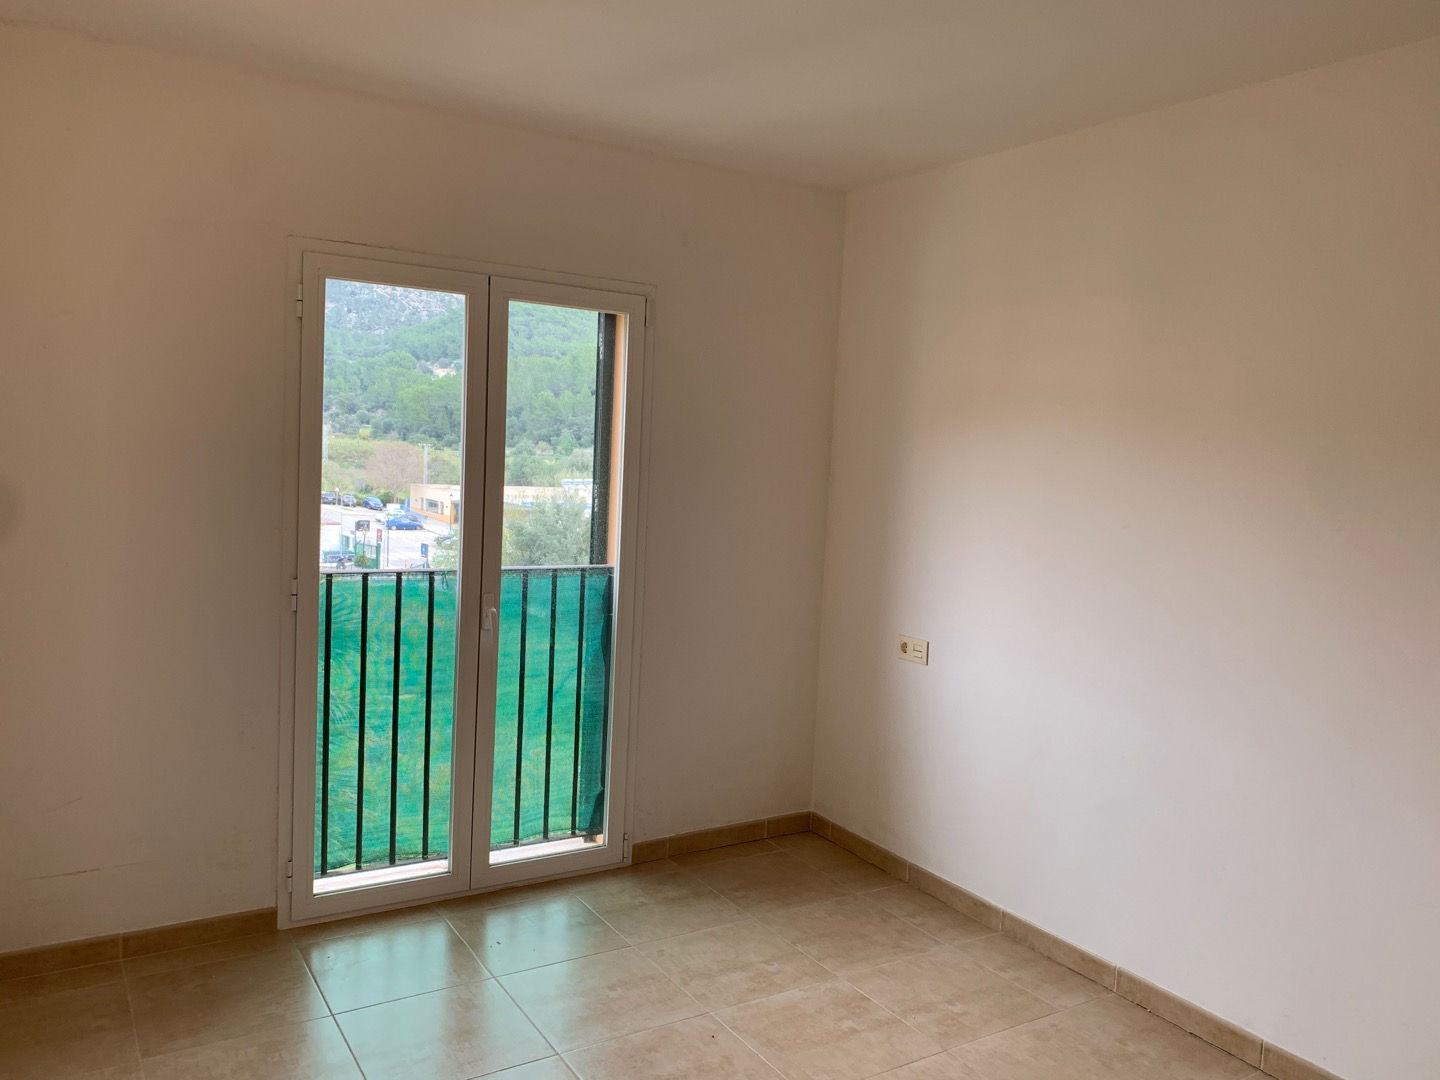 Location Appartement  Carrer son seguí, 3